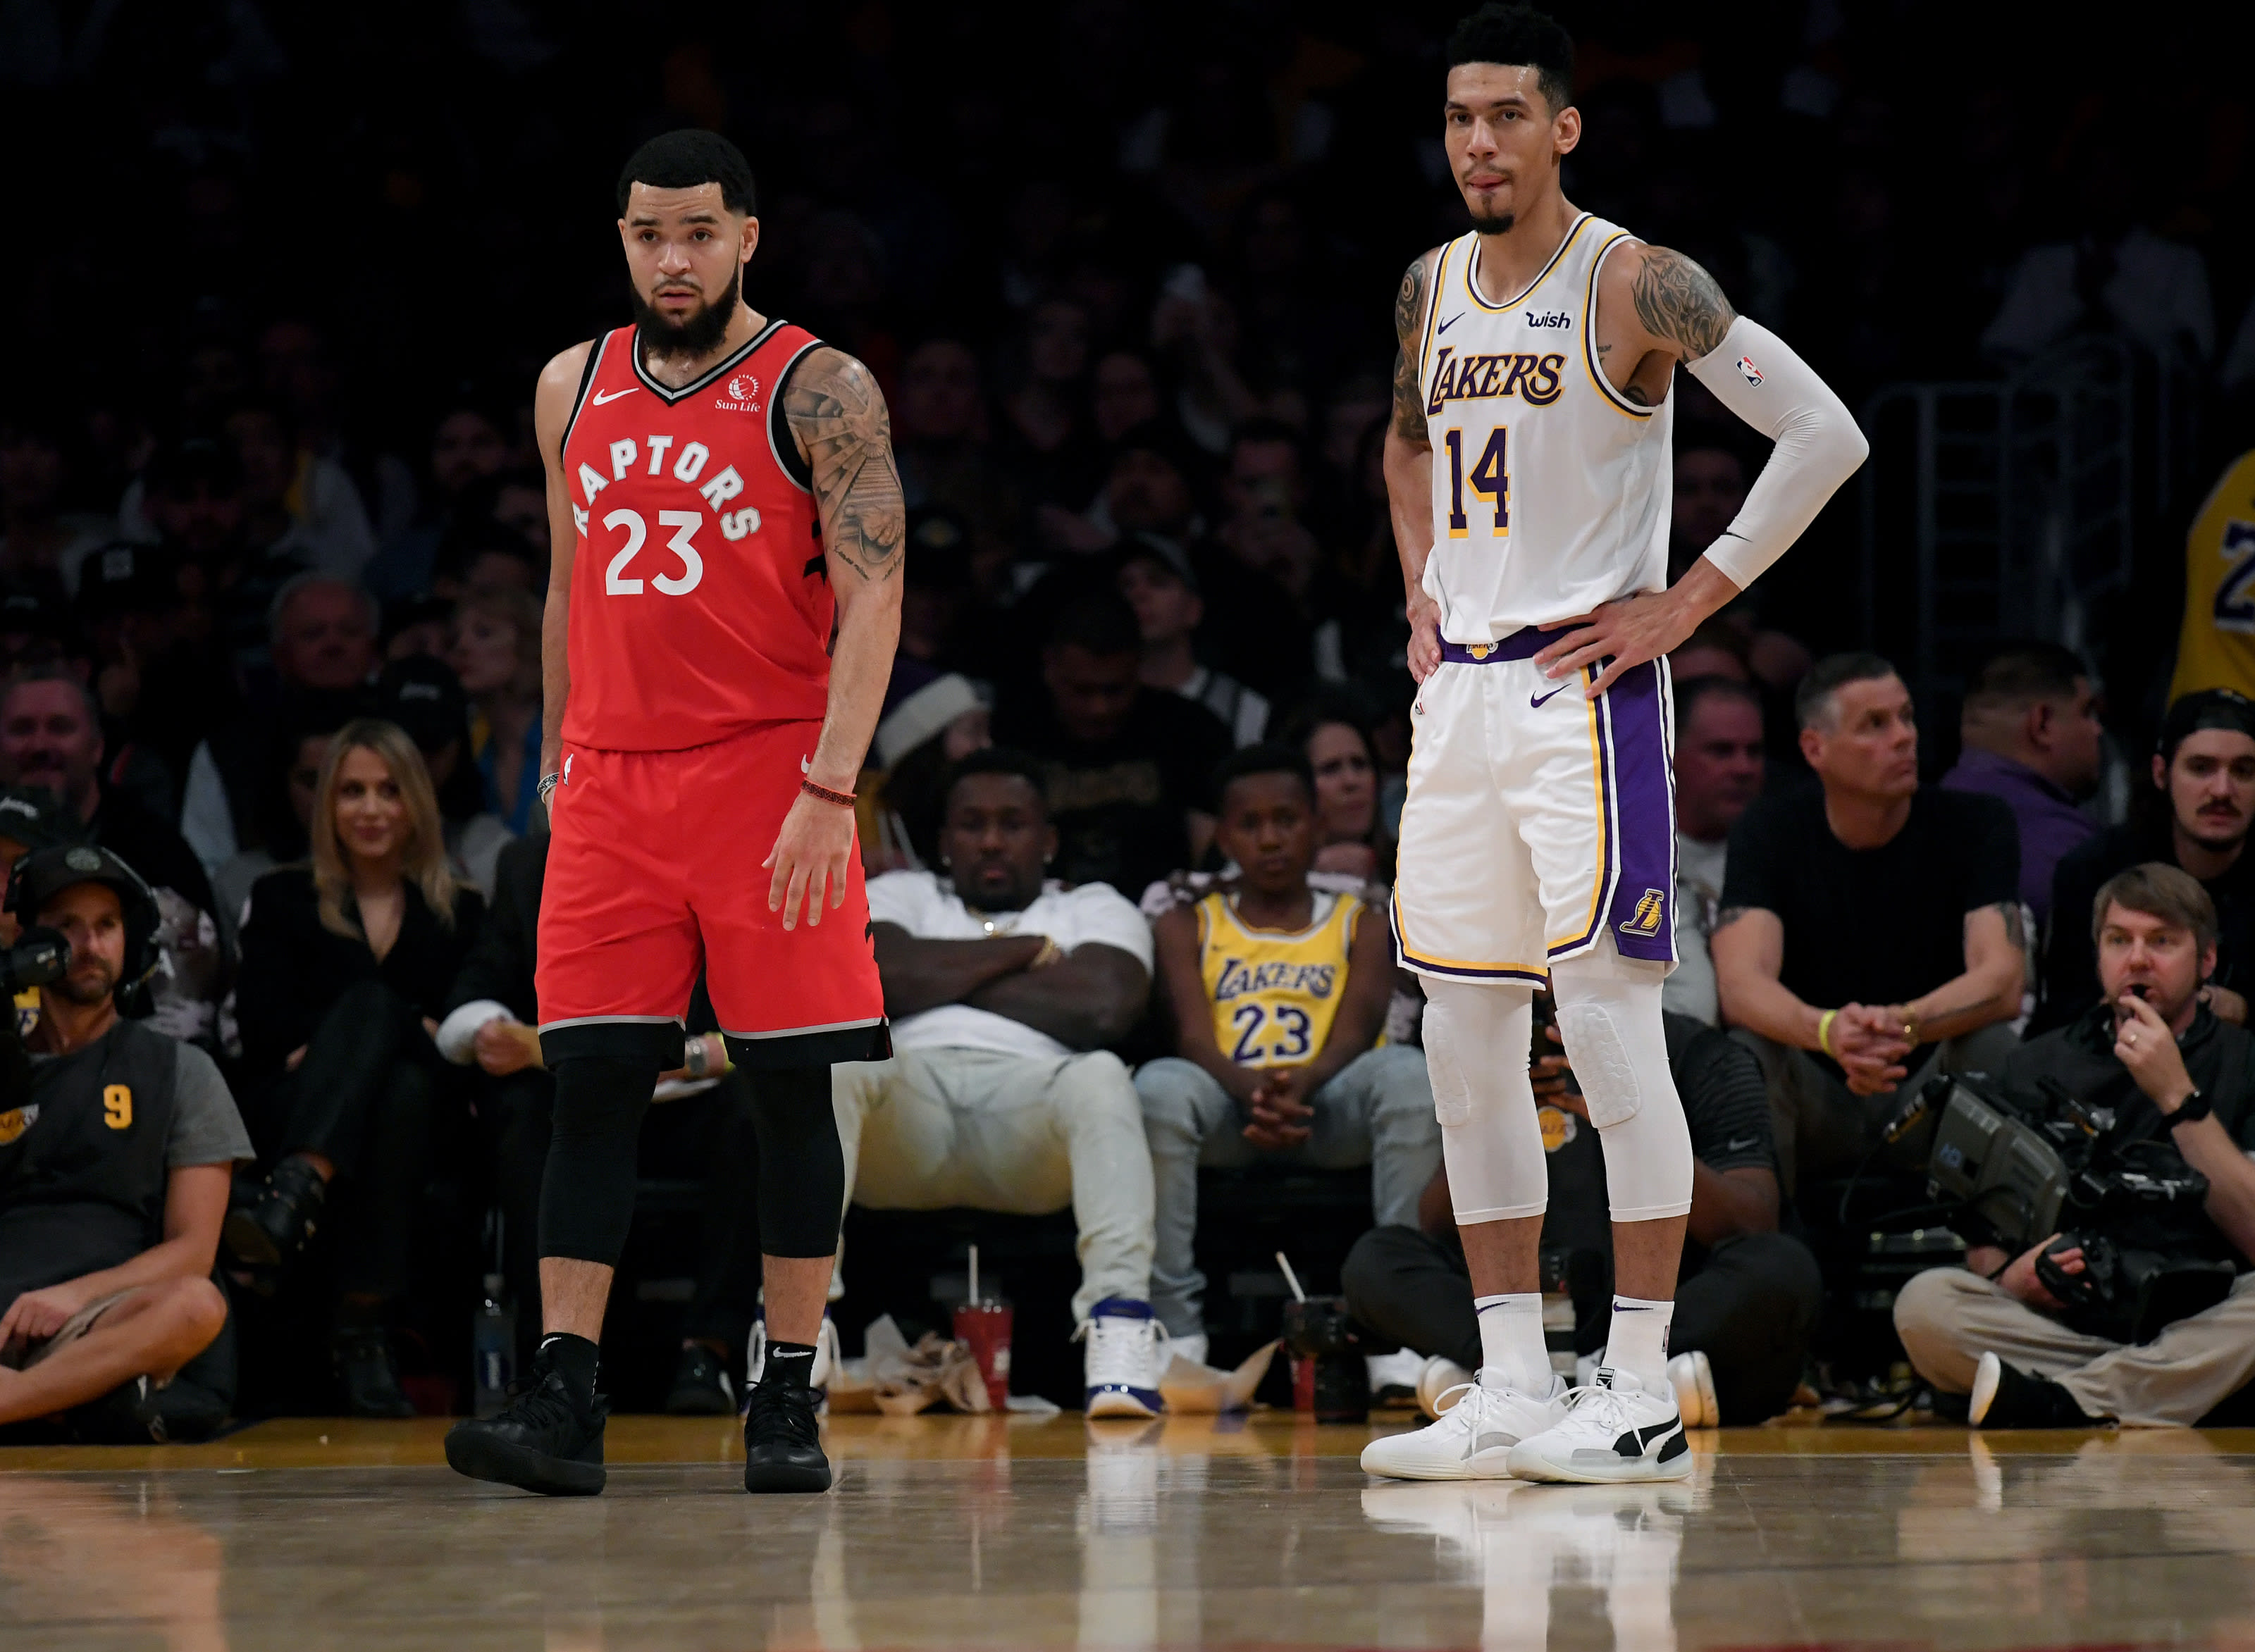 Should The Toronto Raptors Have Pursued Danny Green Harder